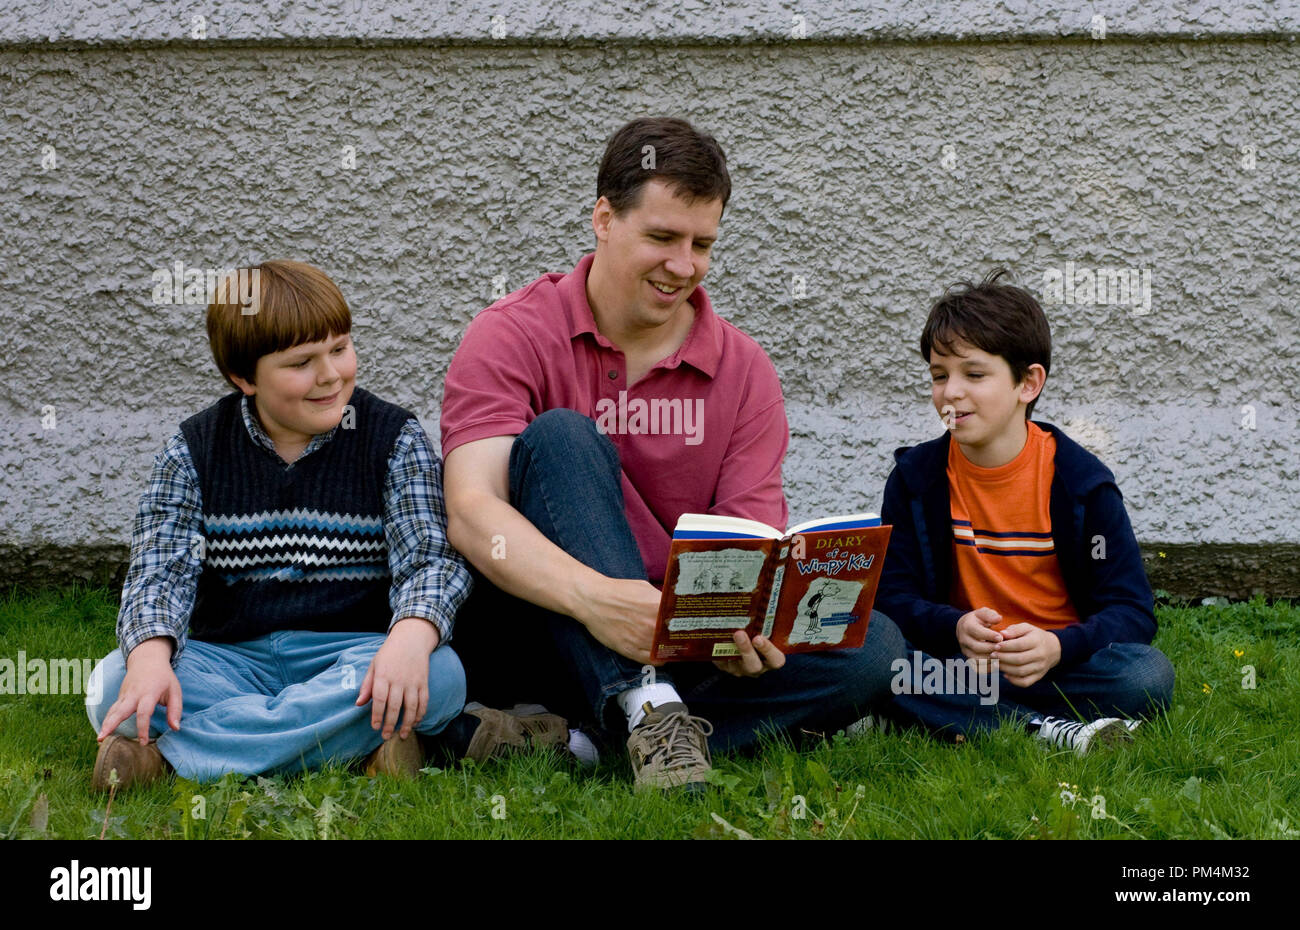 Diary Of A Wimpy Kid Author Jeff Kinney Who Is The Film S Executive Producer And Actors